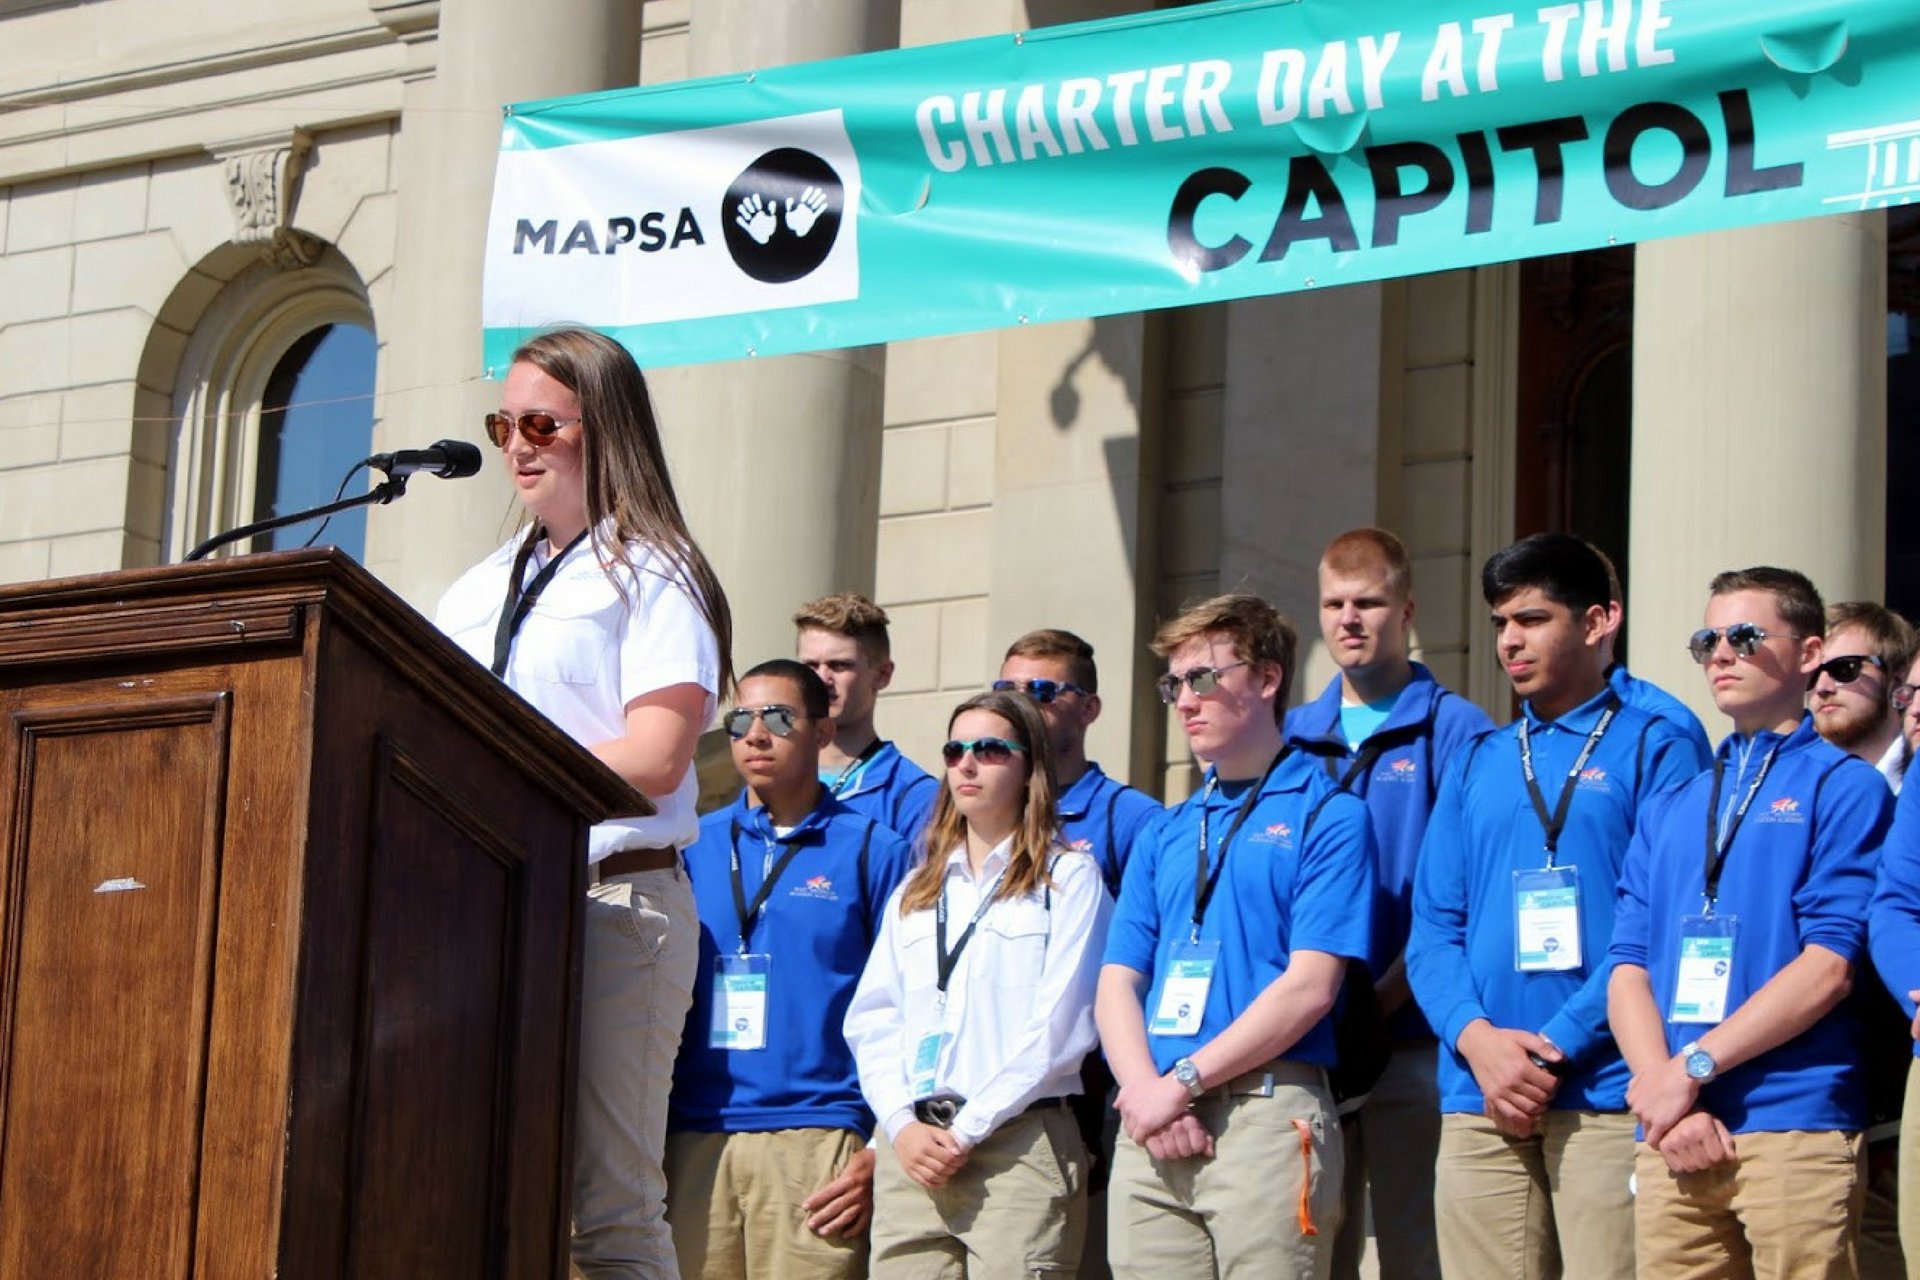 A photo of several students from West Michigan Aviation Academy on the Lansing Capitol steps during 2018 Charter Day at the Capitol.